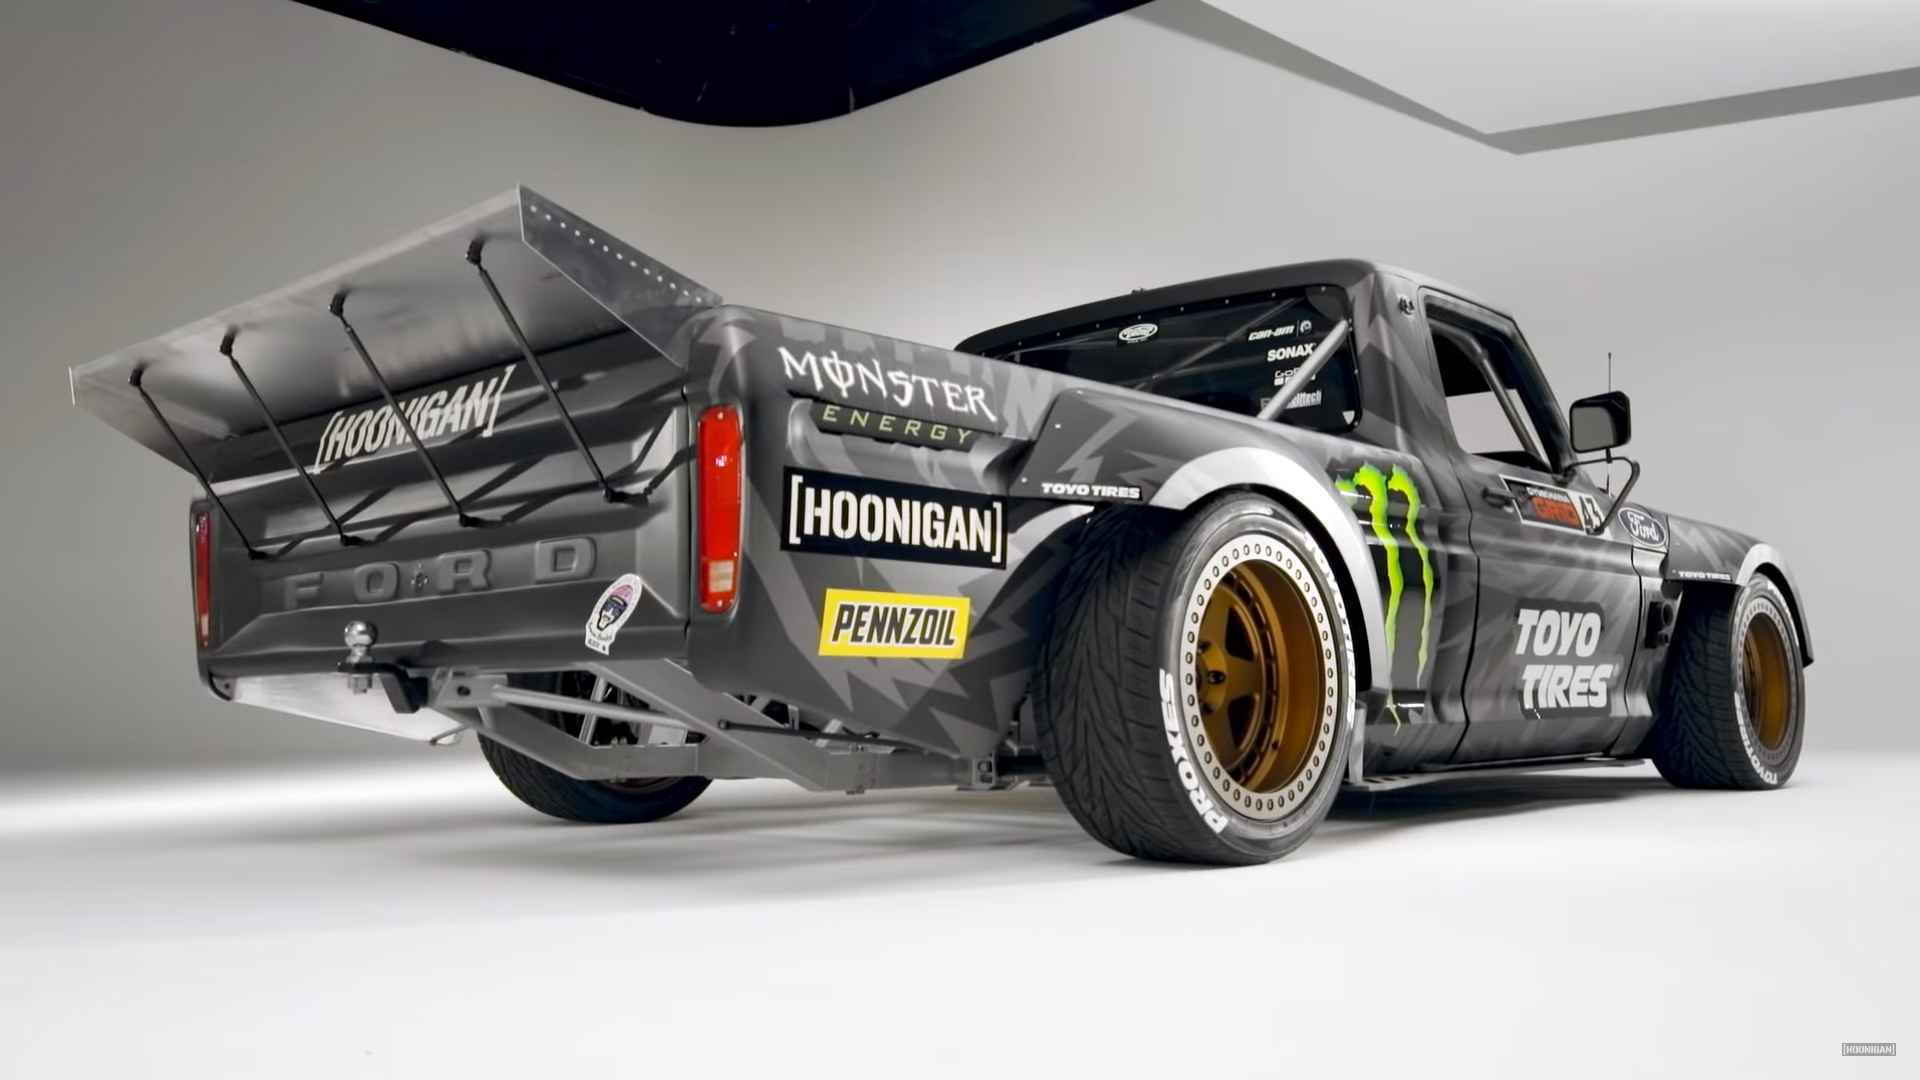 Ken Block now has a 1977 Ford F-150 Hoonitruck with 914